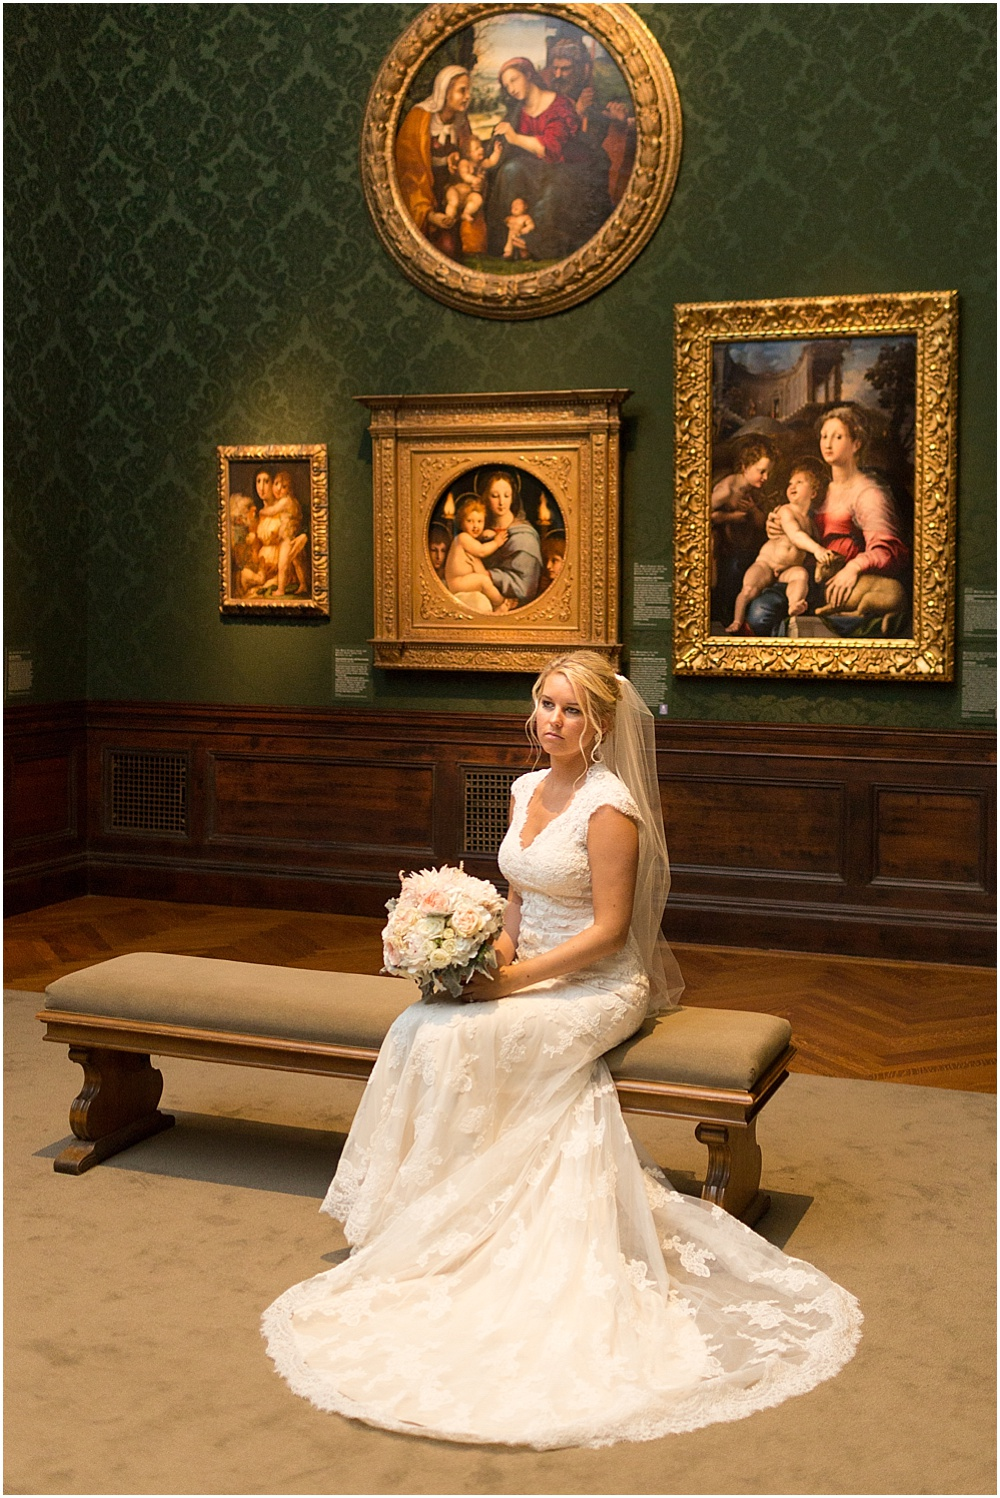 The_Walters_Art_Gallery_Baltimore_Wedding_Photographer_0094